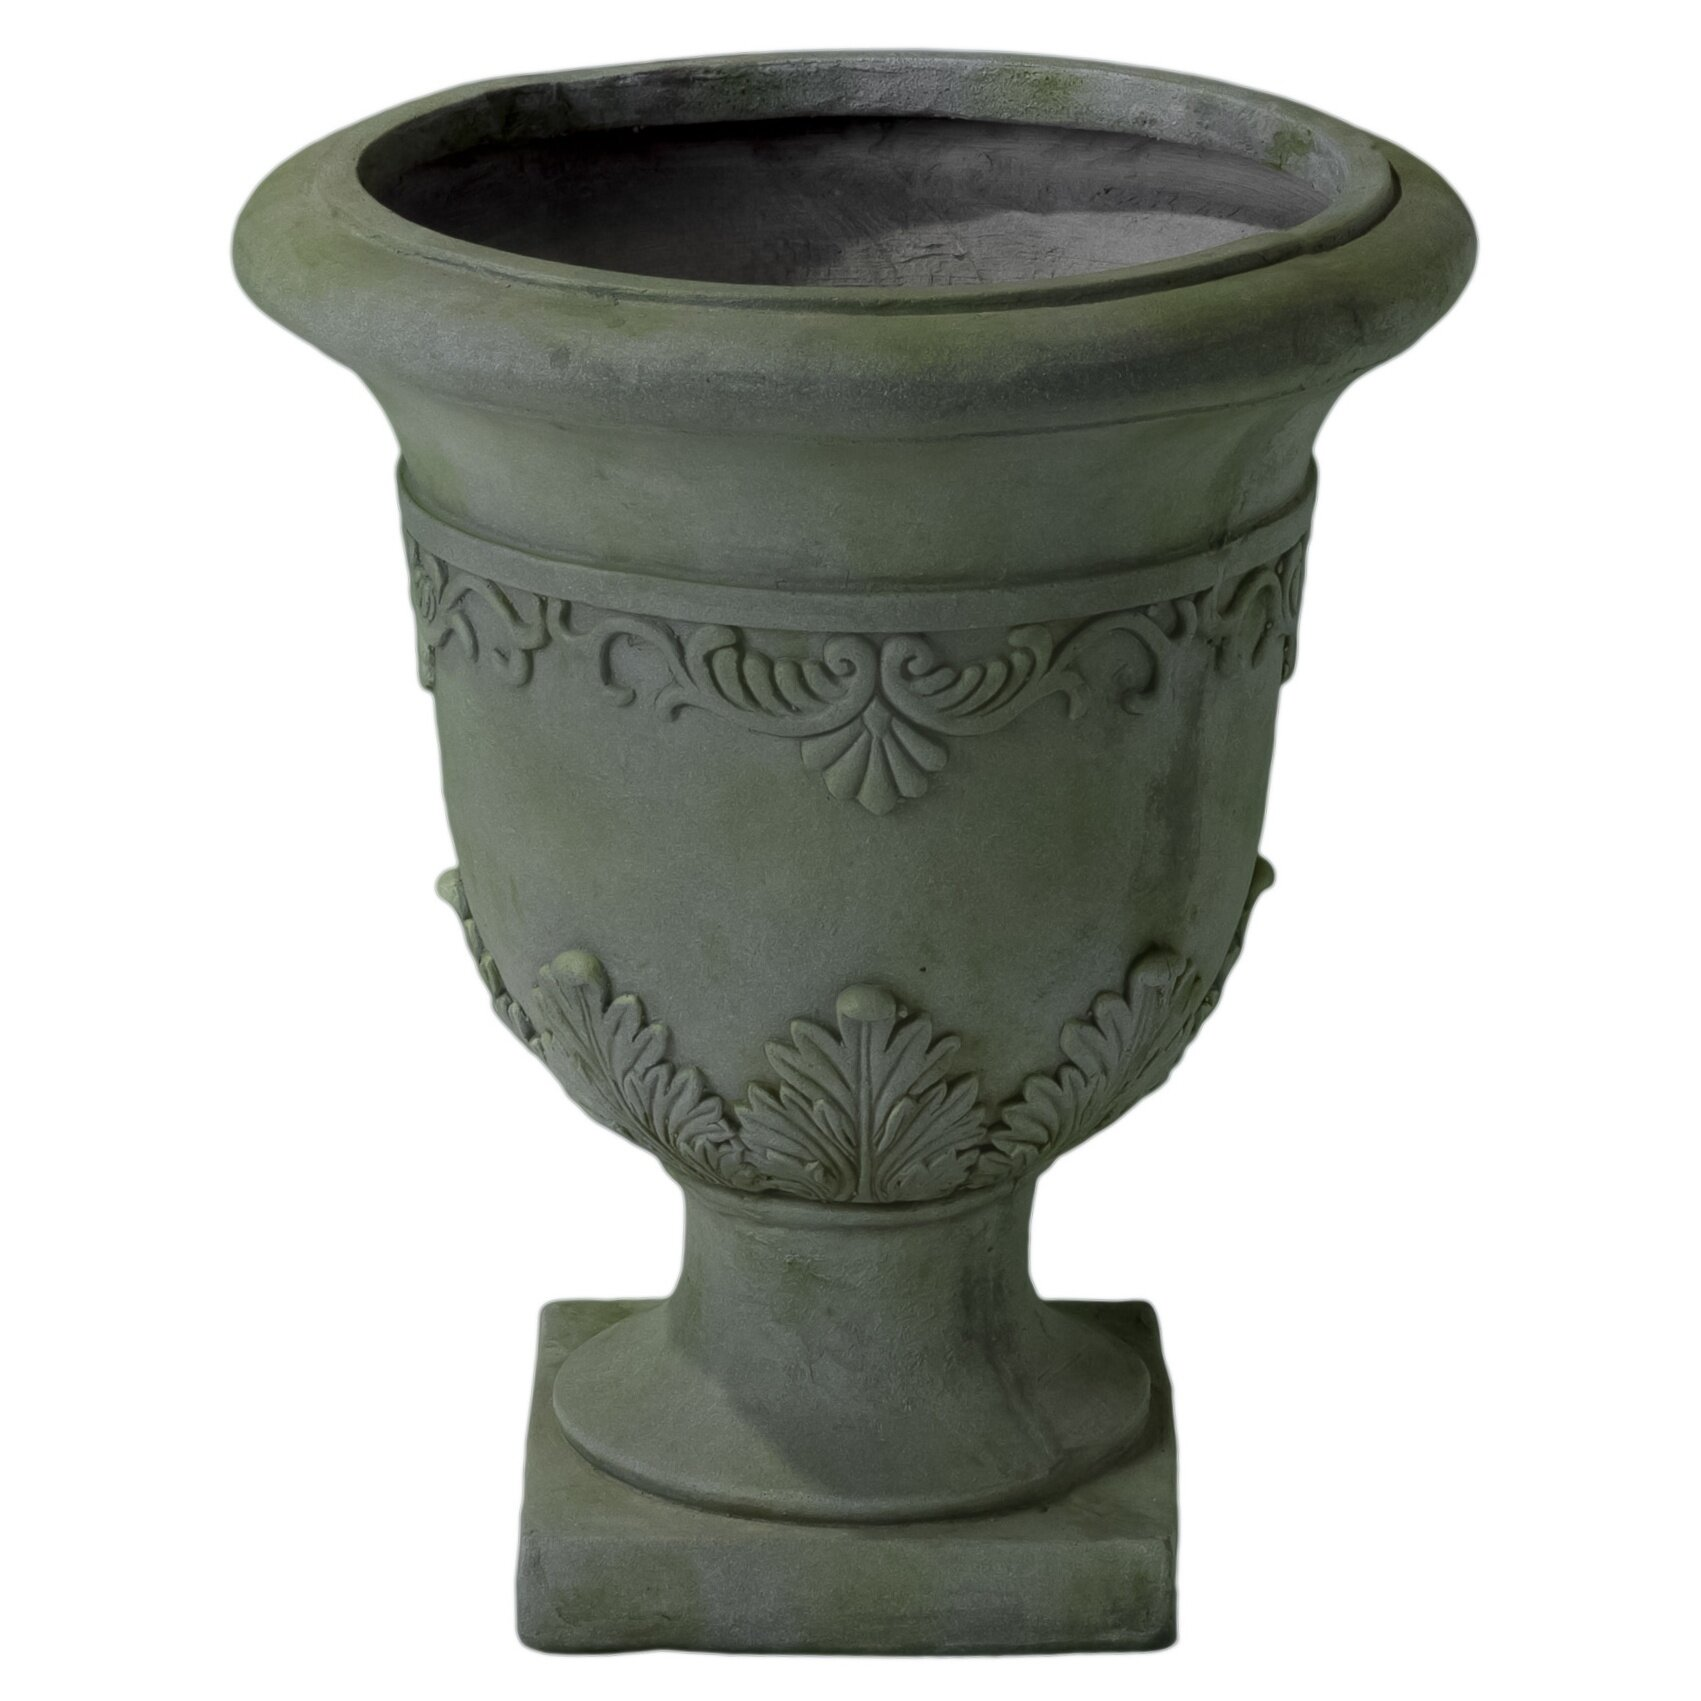 Footed Planter from wayfair